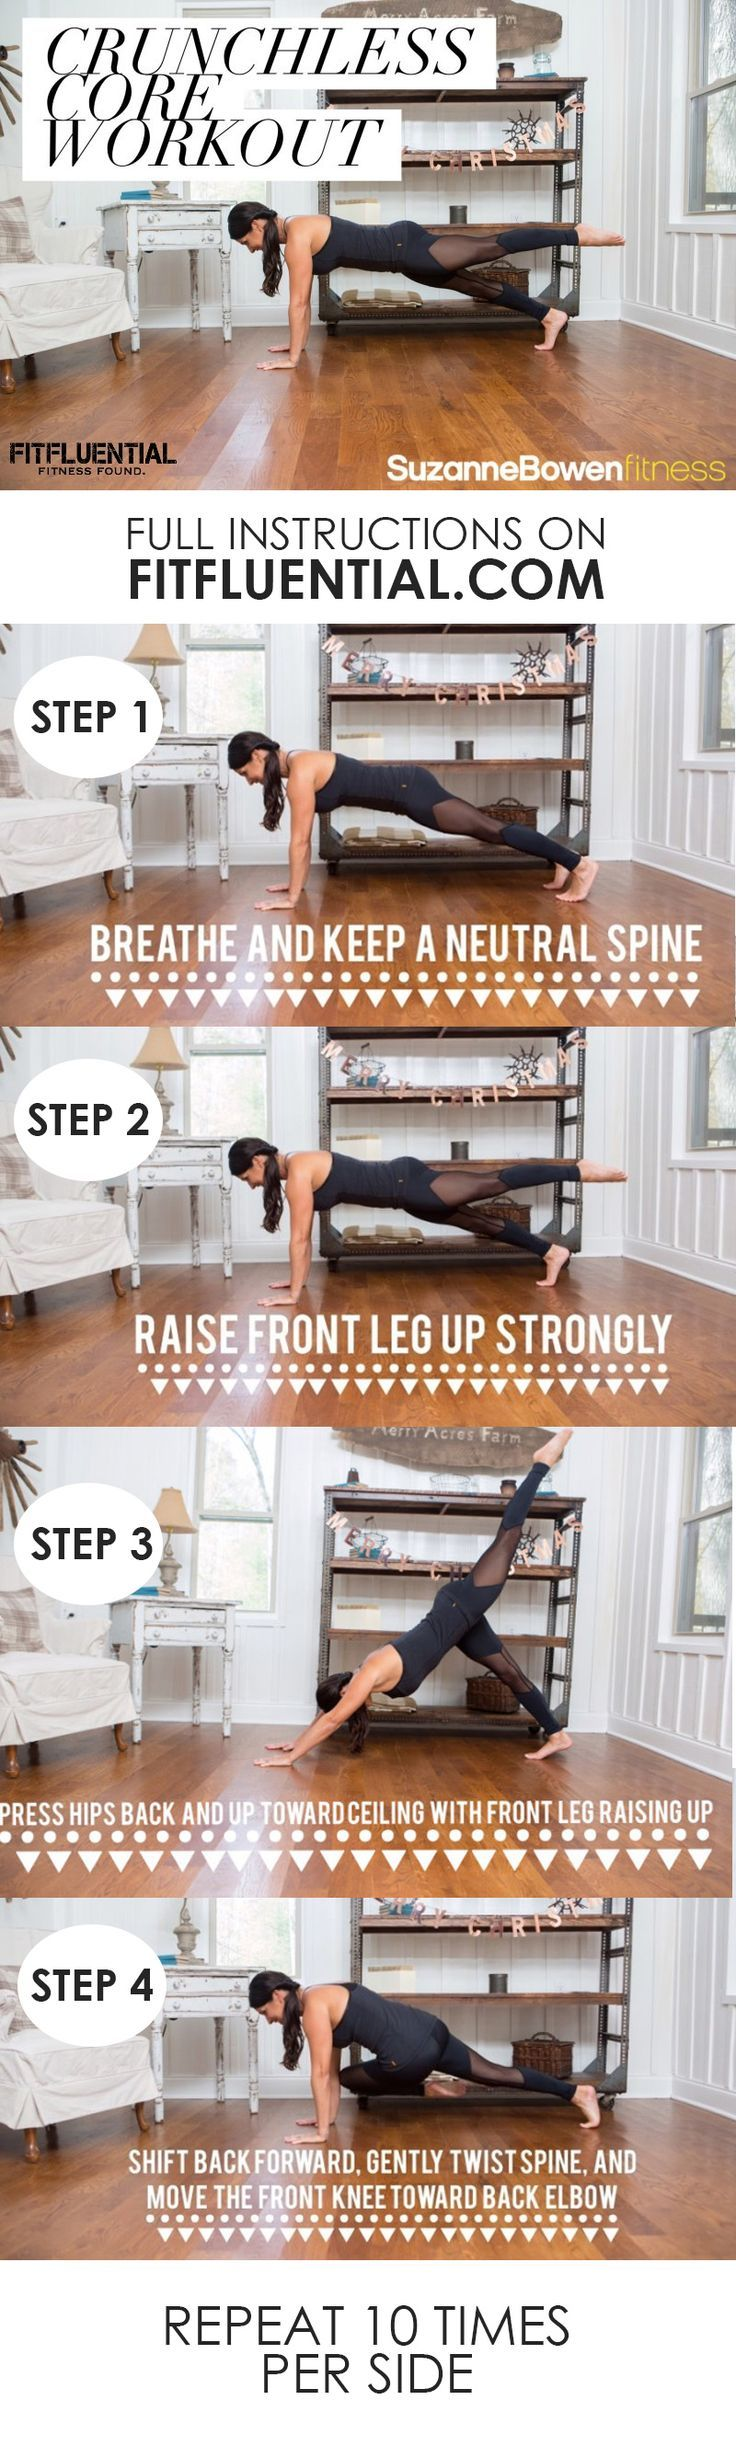 Work the abs and core with this abdominal workout featuring absolutely NO crunches! From Suzanne Bowen. click for full workout and instructions.